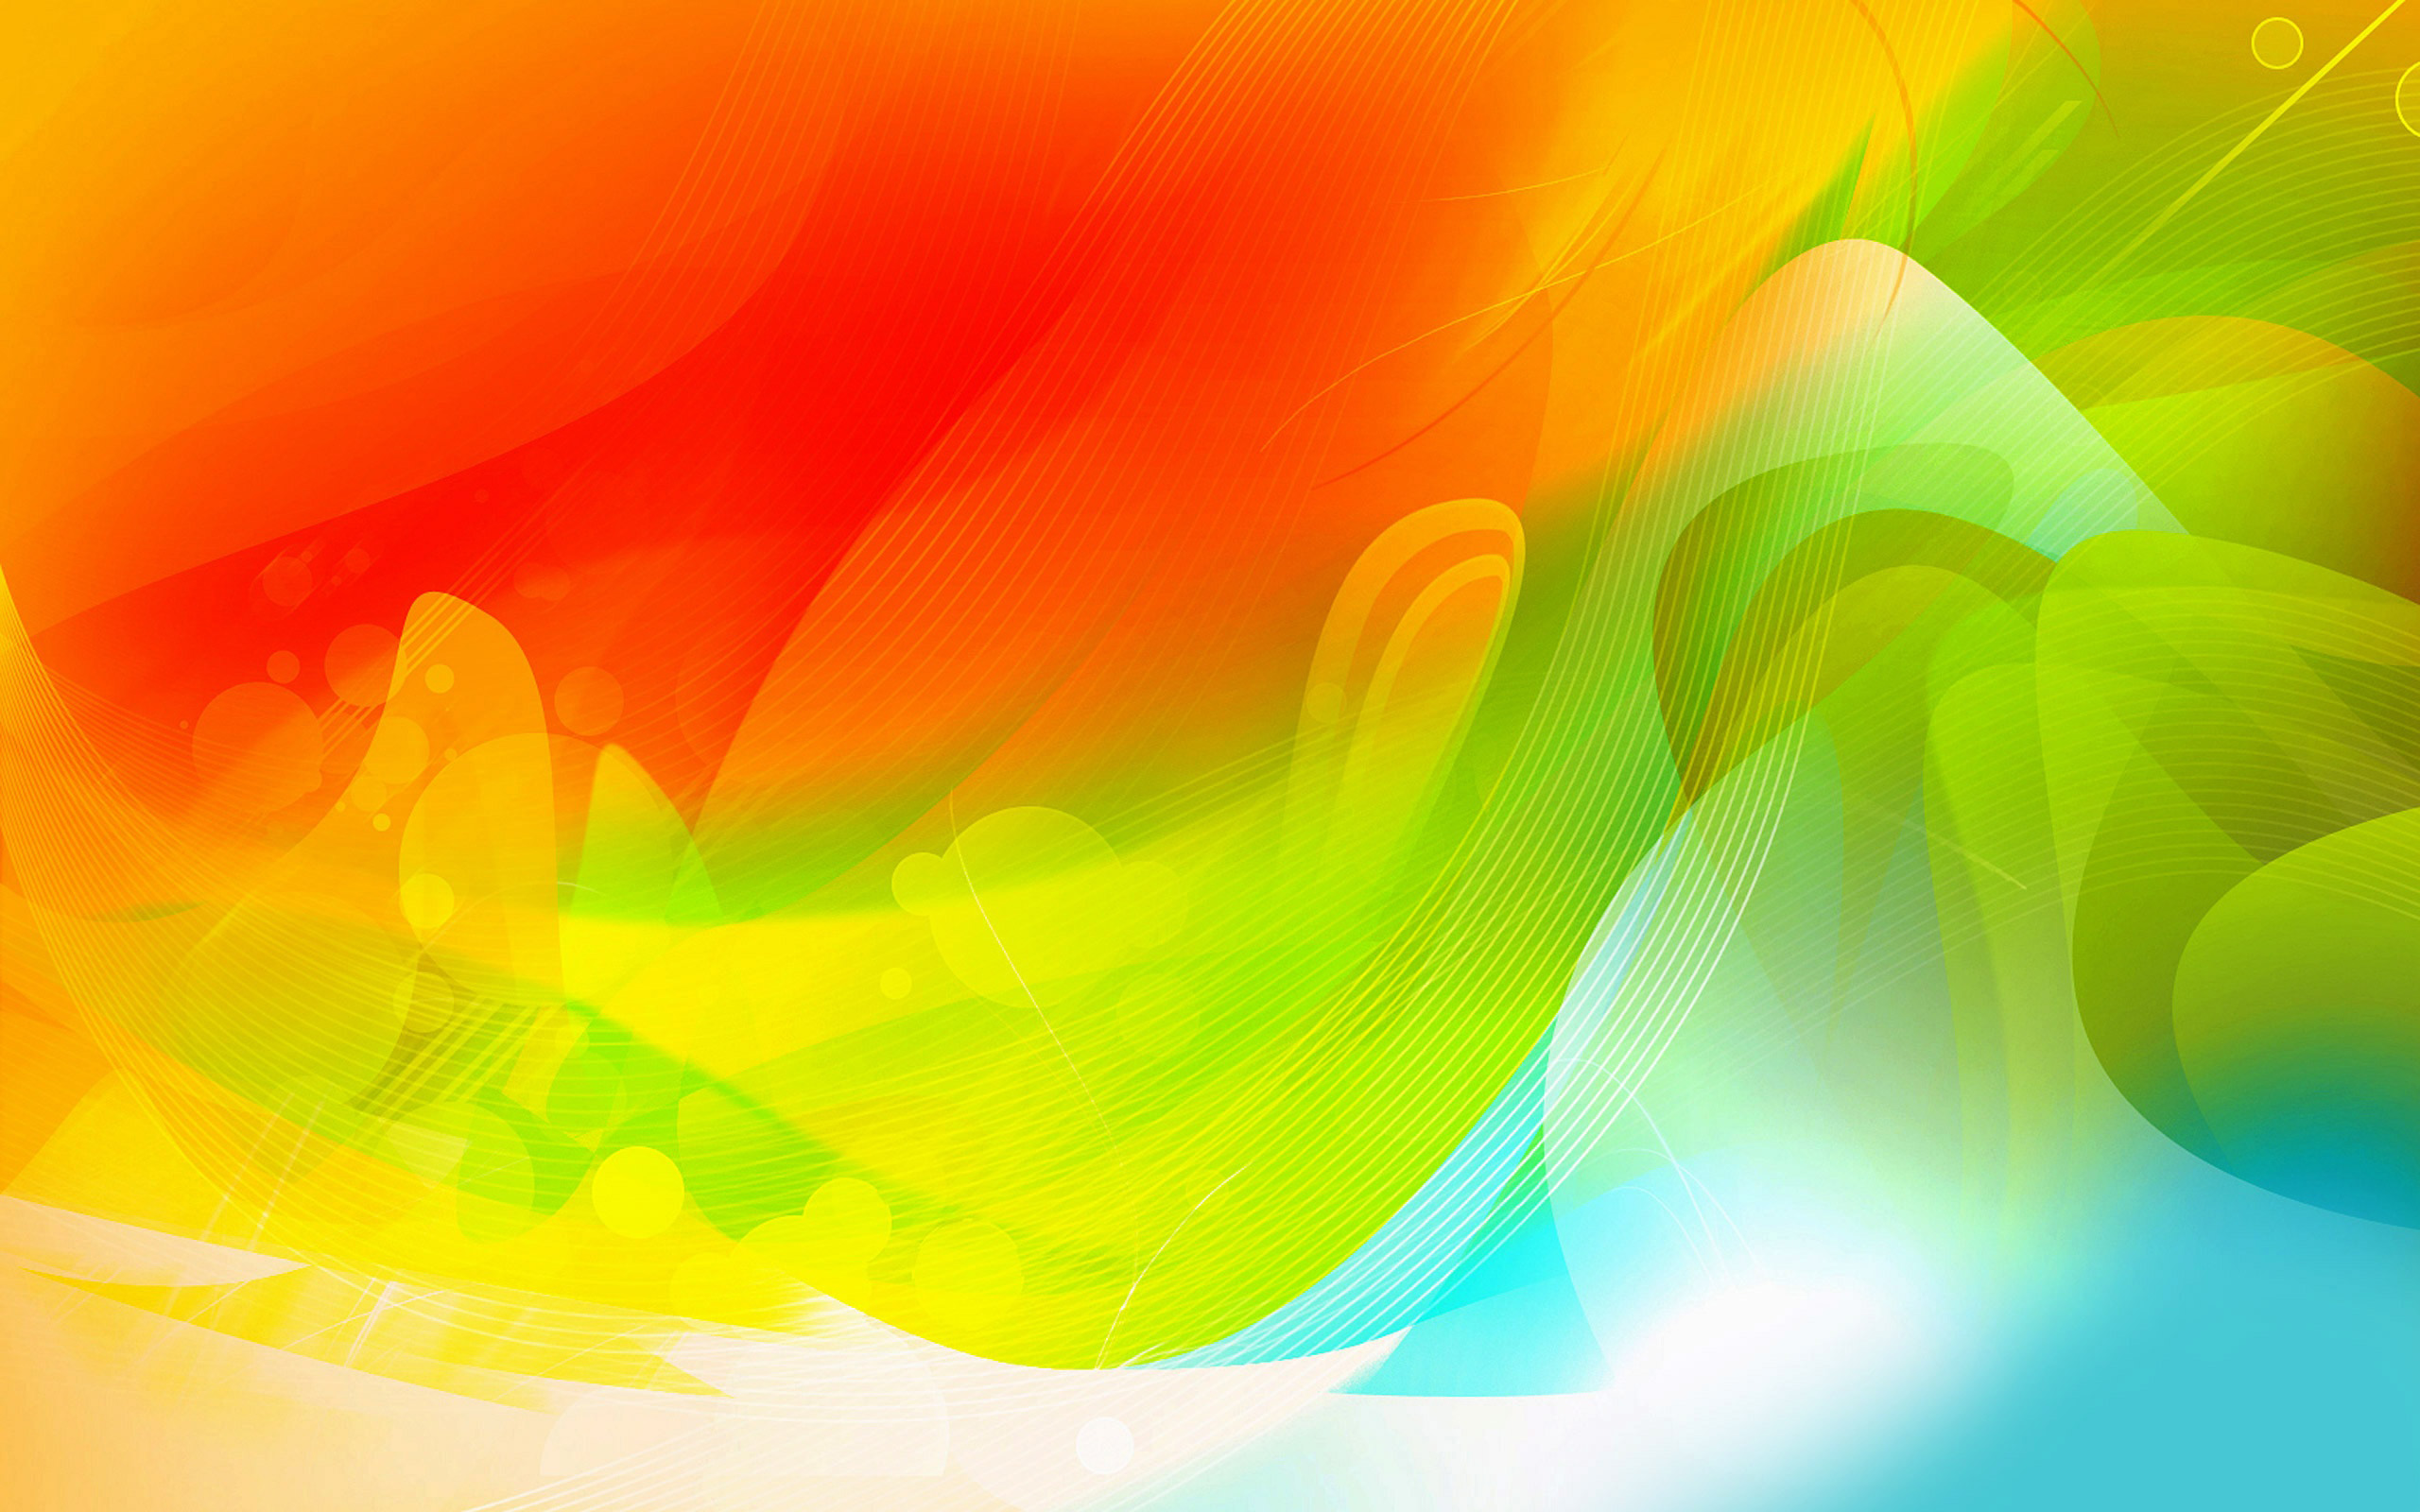 Colorful Amazing Wallpaper Art was added by Julia at October 17, 2014 ...